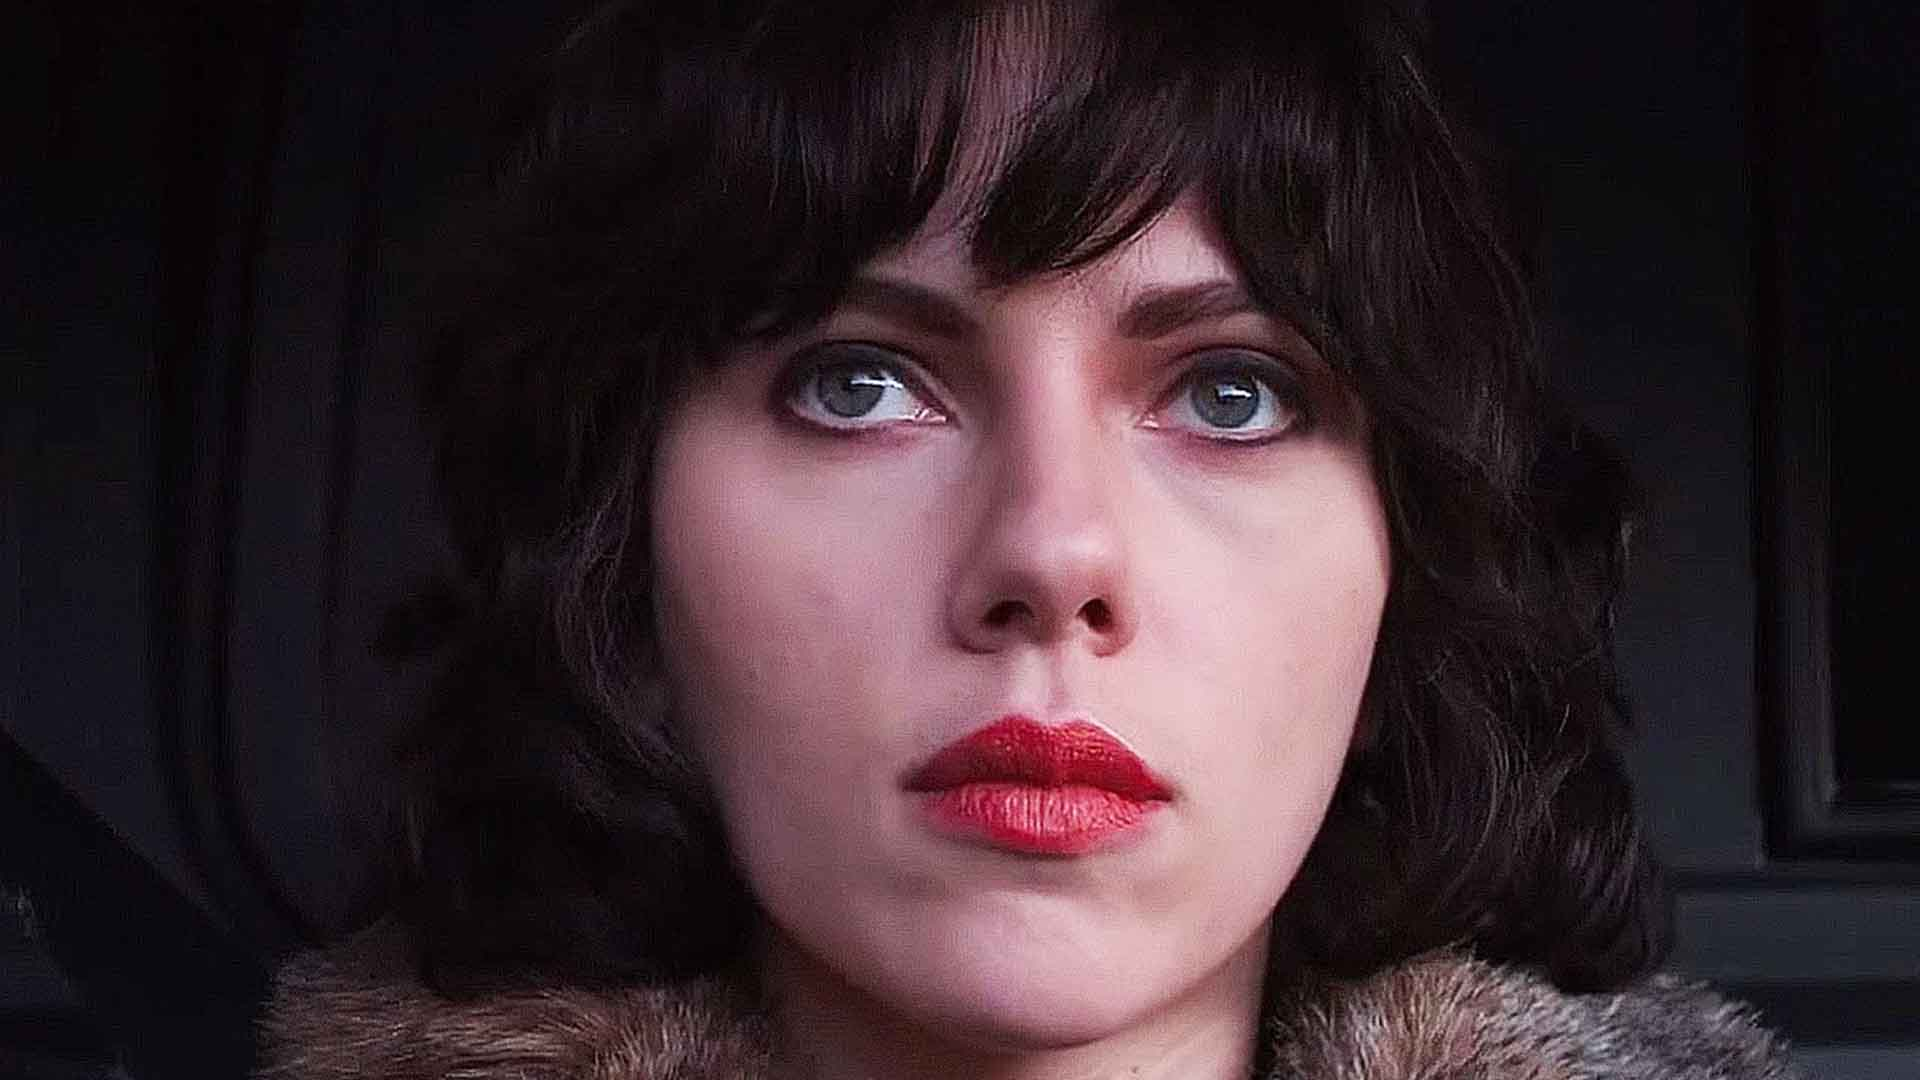 Scarlett Johansson as an alien in Under the Skin